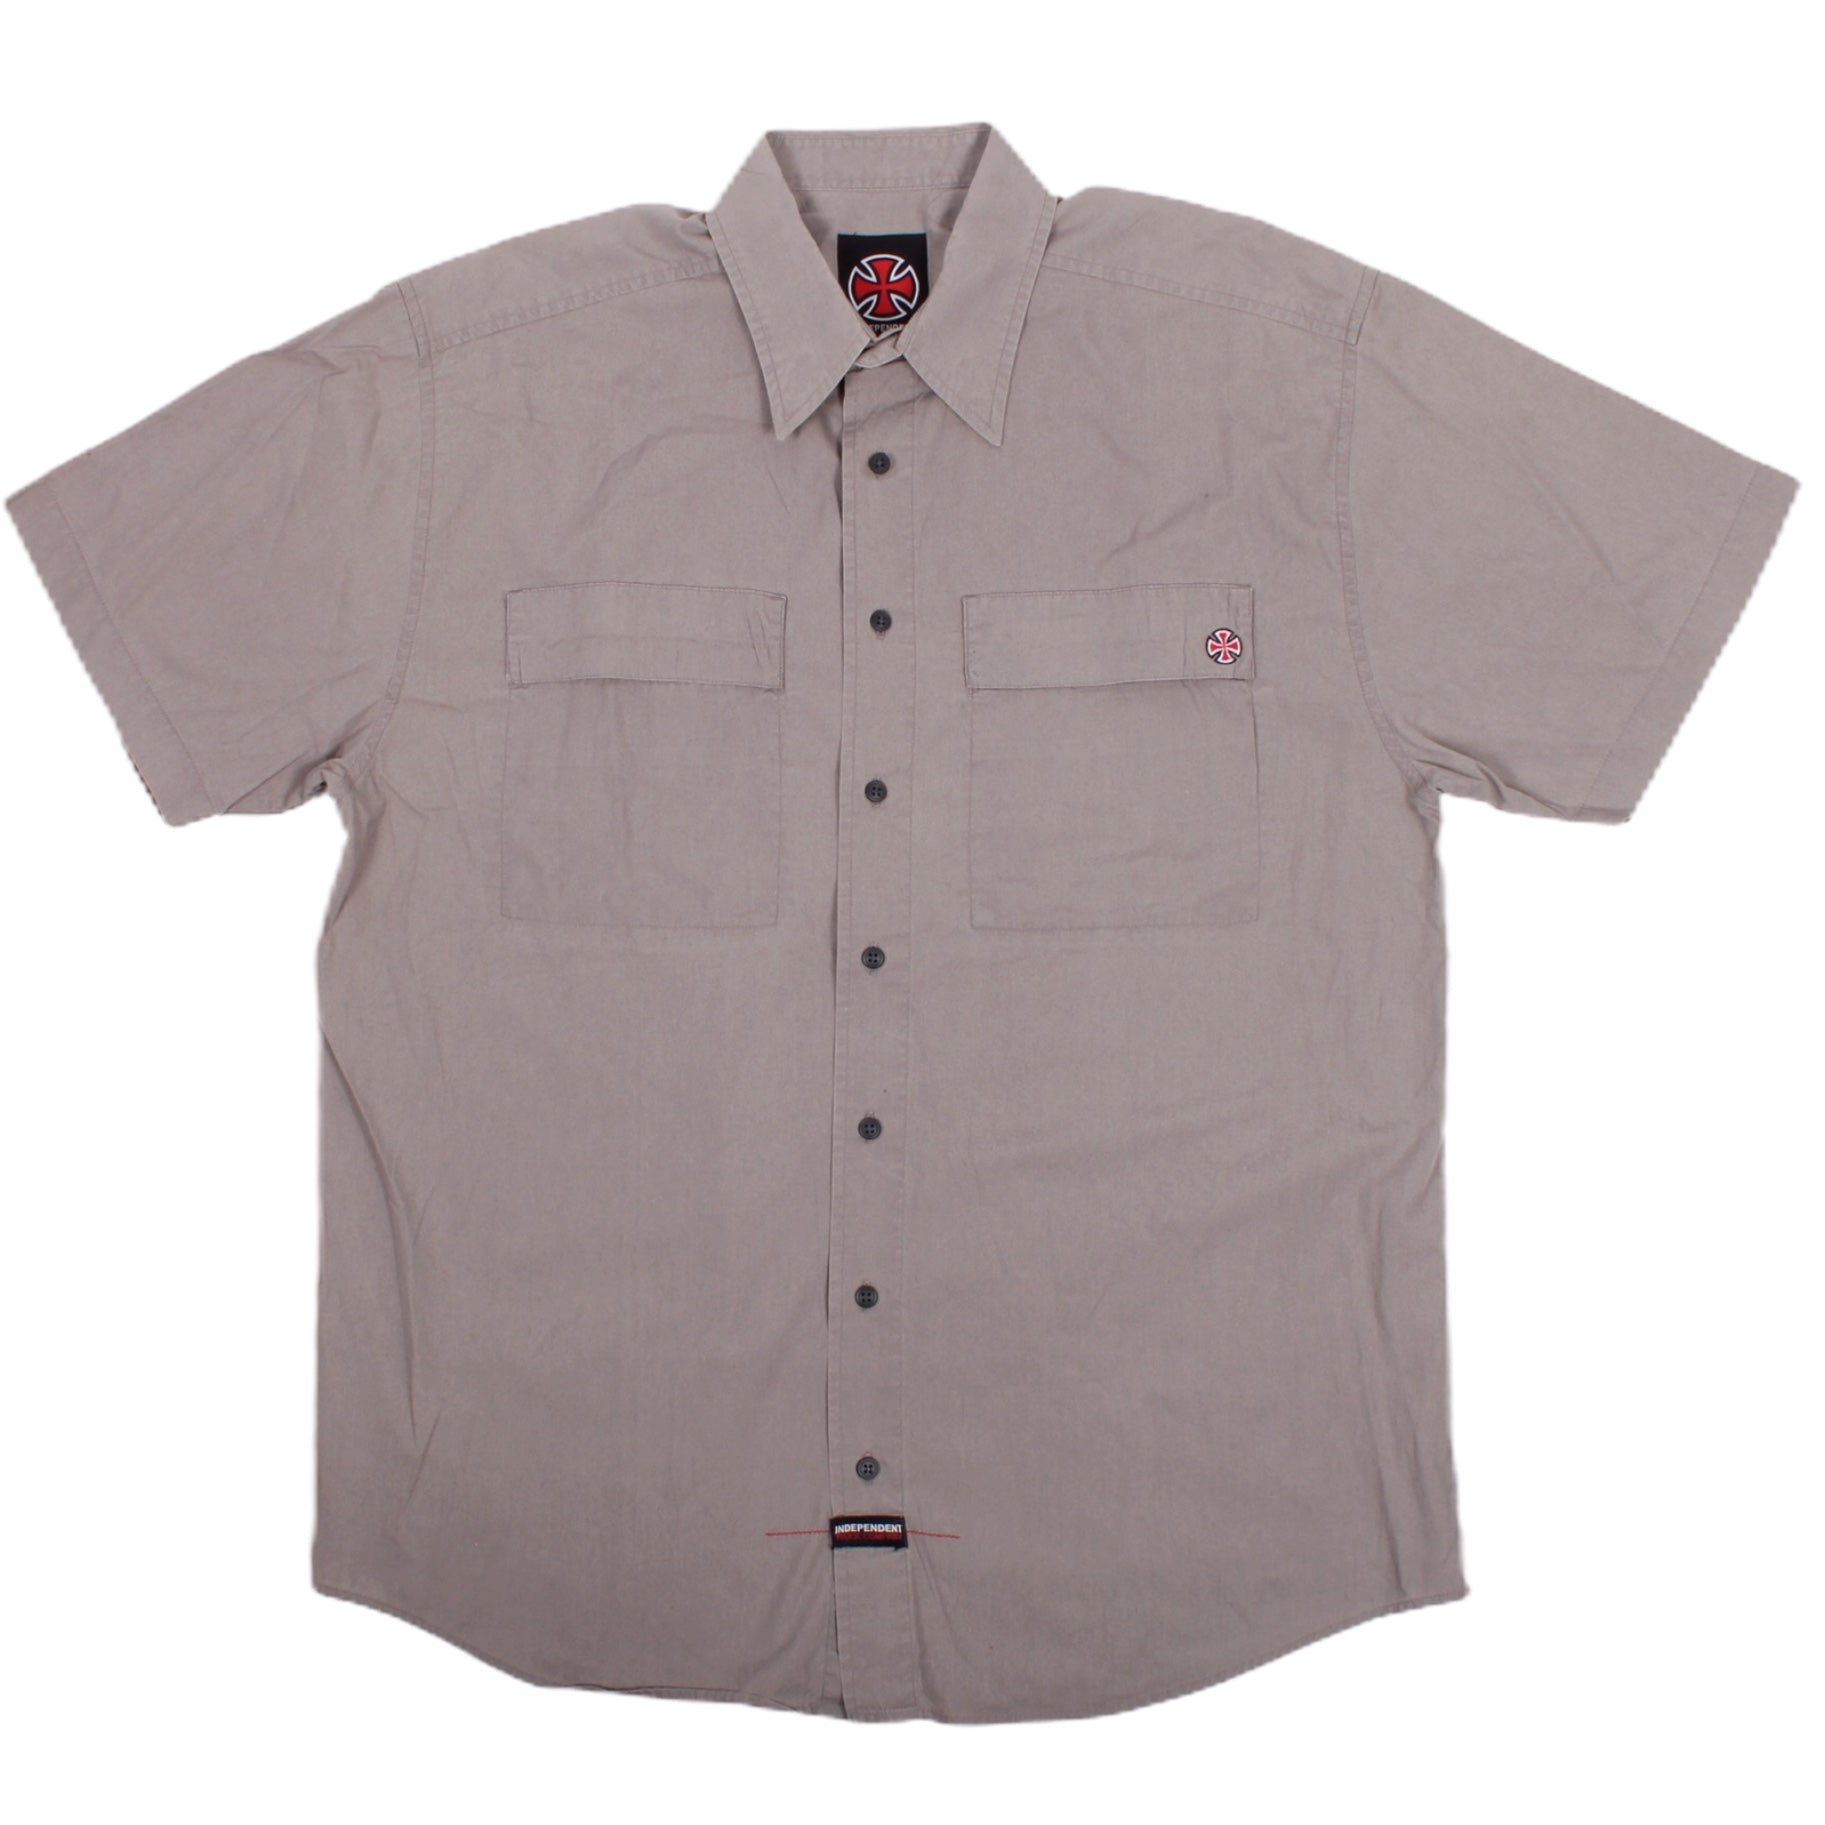 Overripe Independent Short Sleeve Workshirt Grey Large (2005)